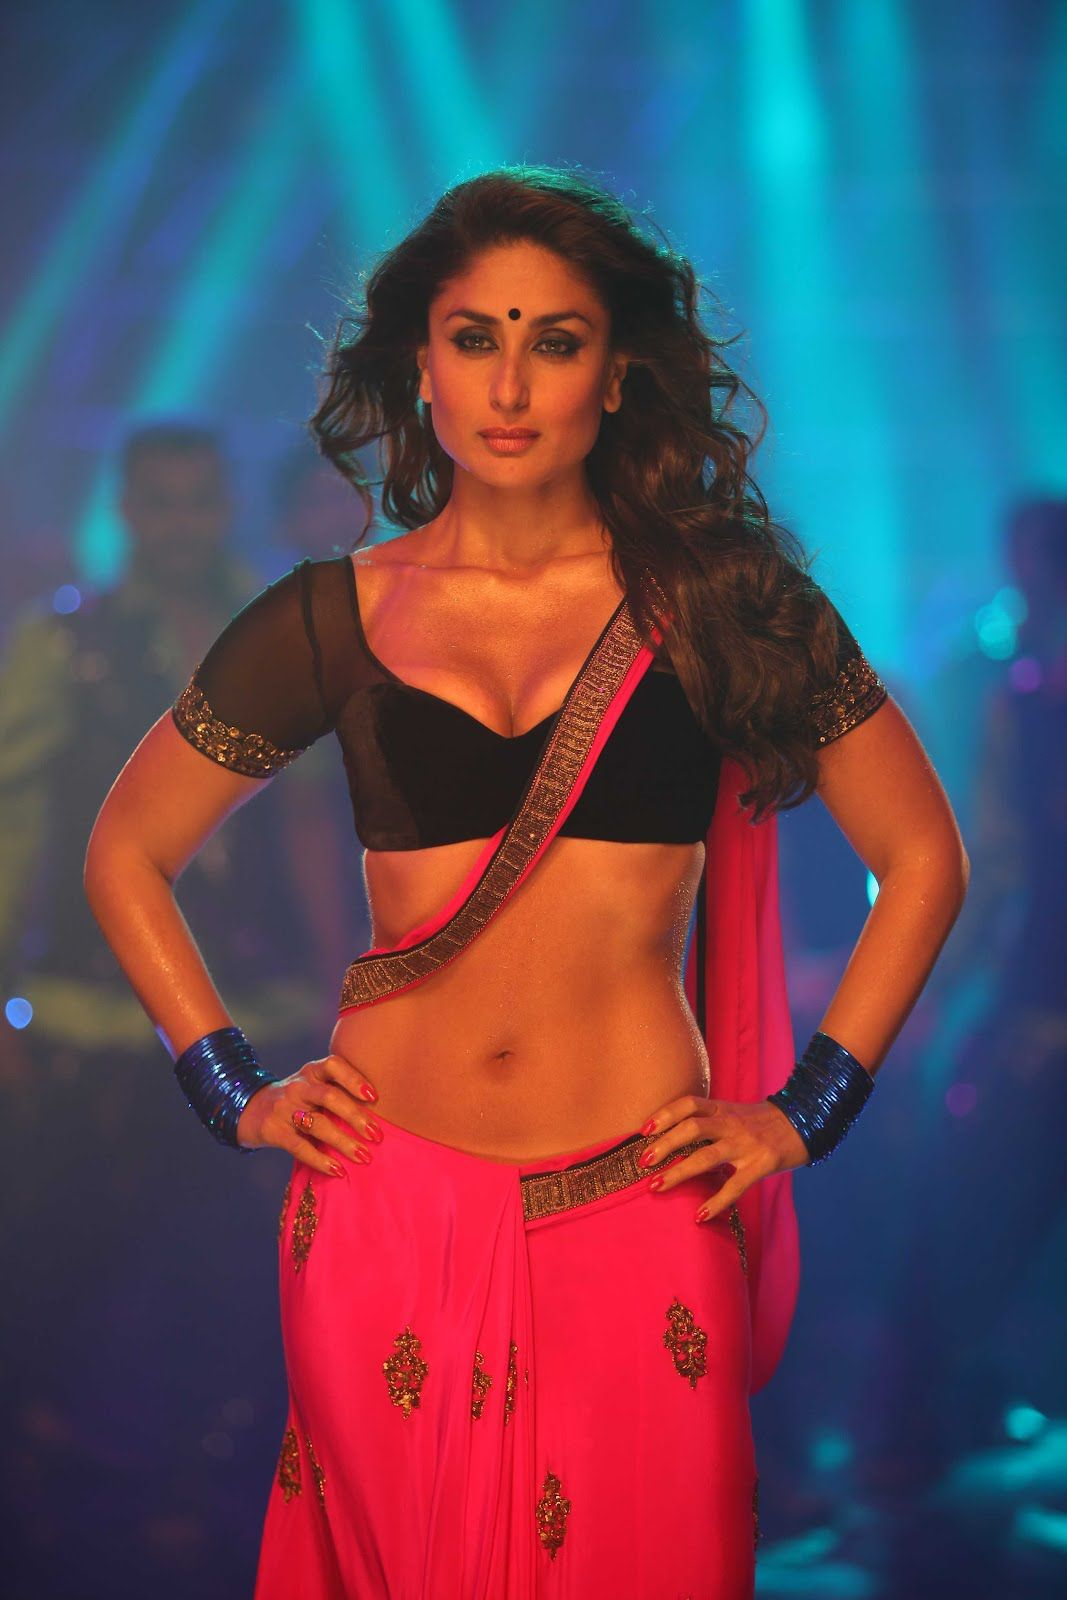 kareena kapoor hot photos in halkat jawani song - cinestars4u